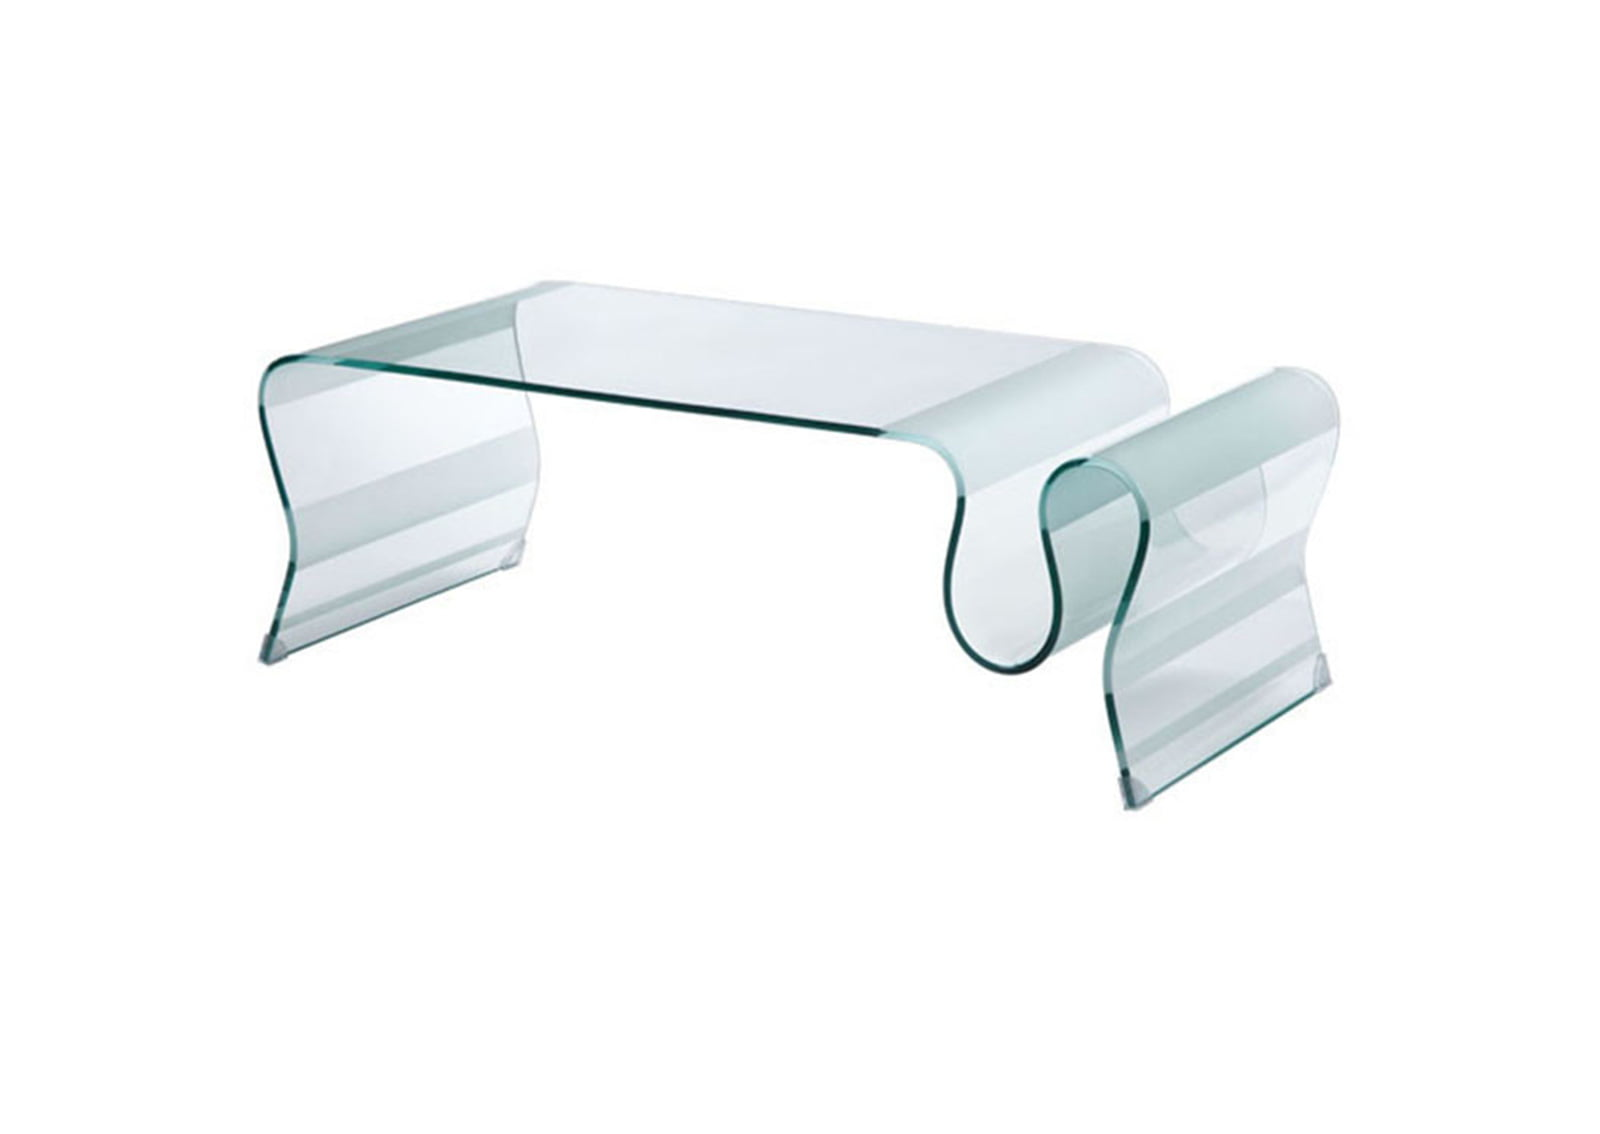 Discovery-Coffee-Table-Clear1